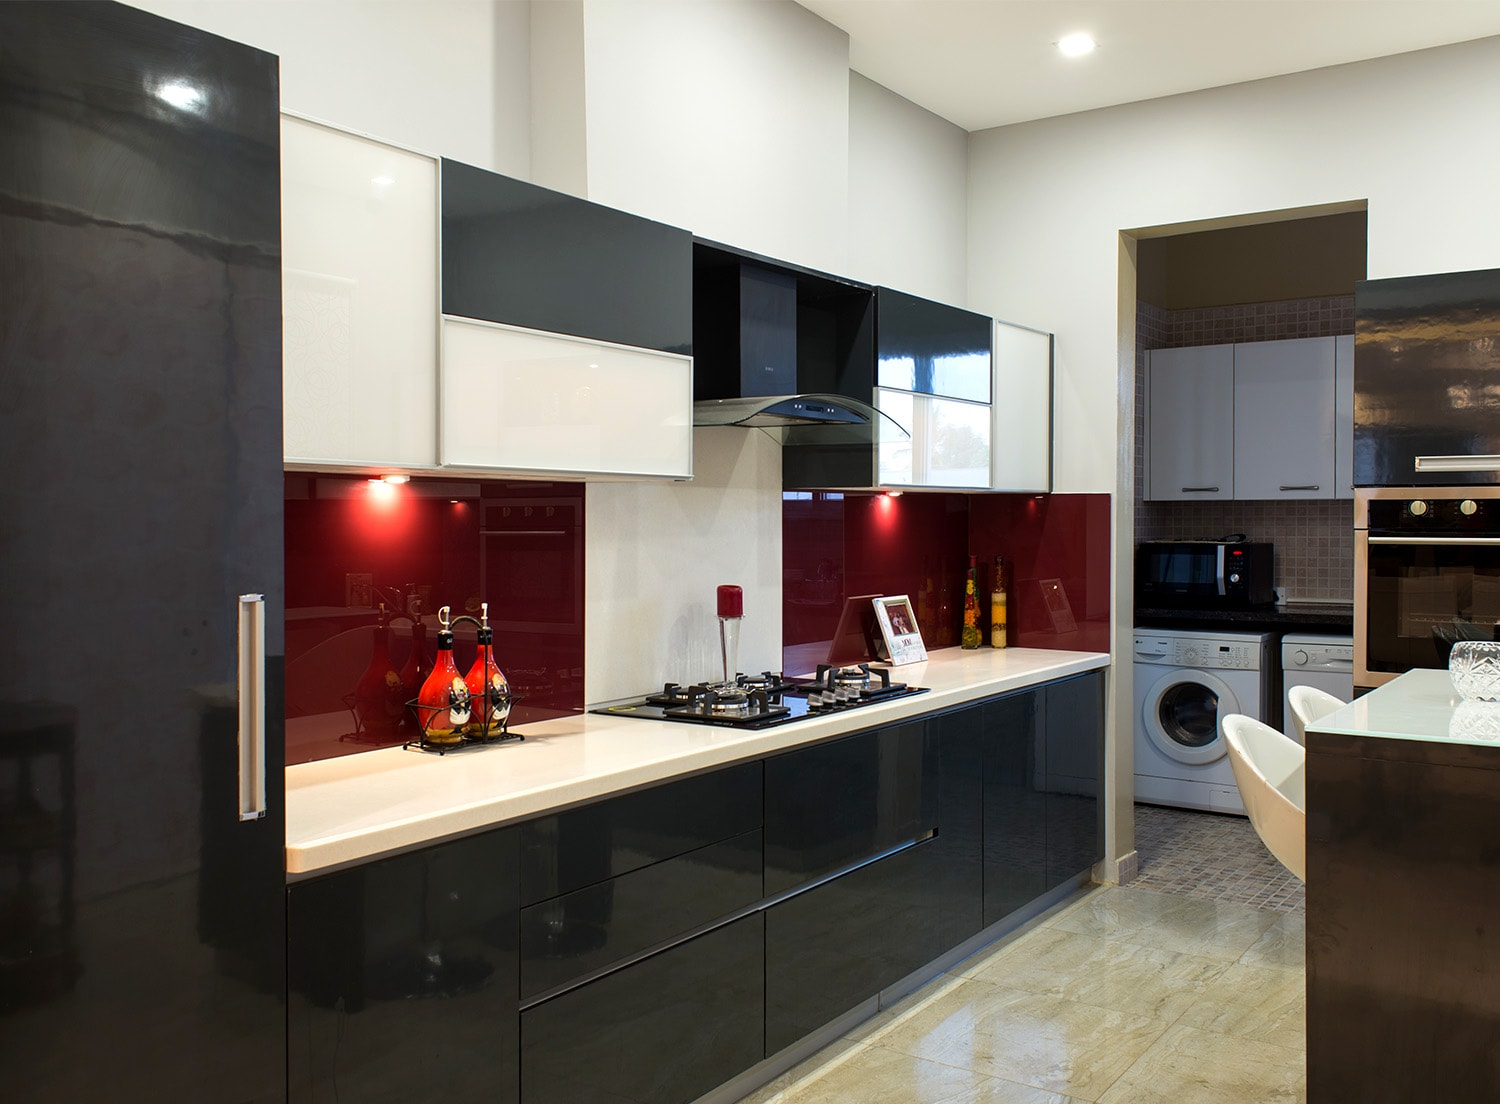 Home Interiors By Homelane Modular Kitchens Wardrobes